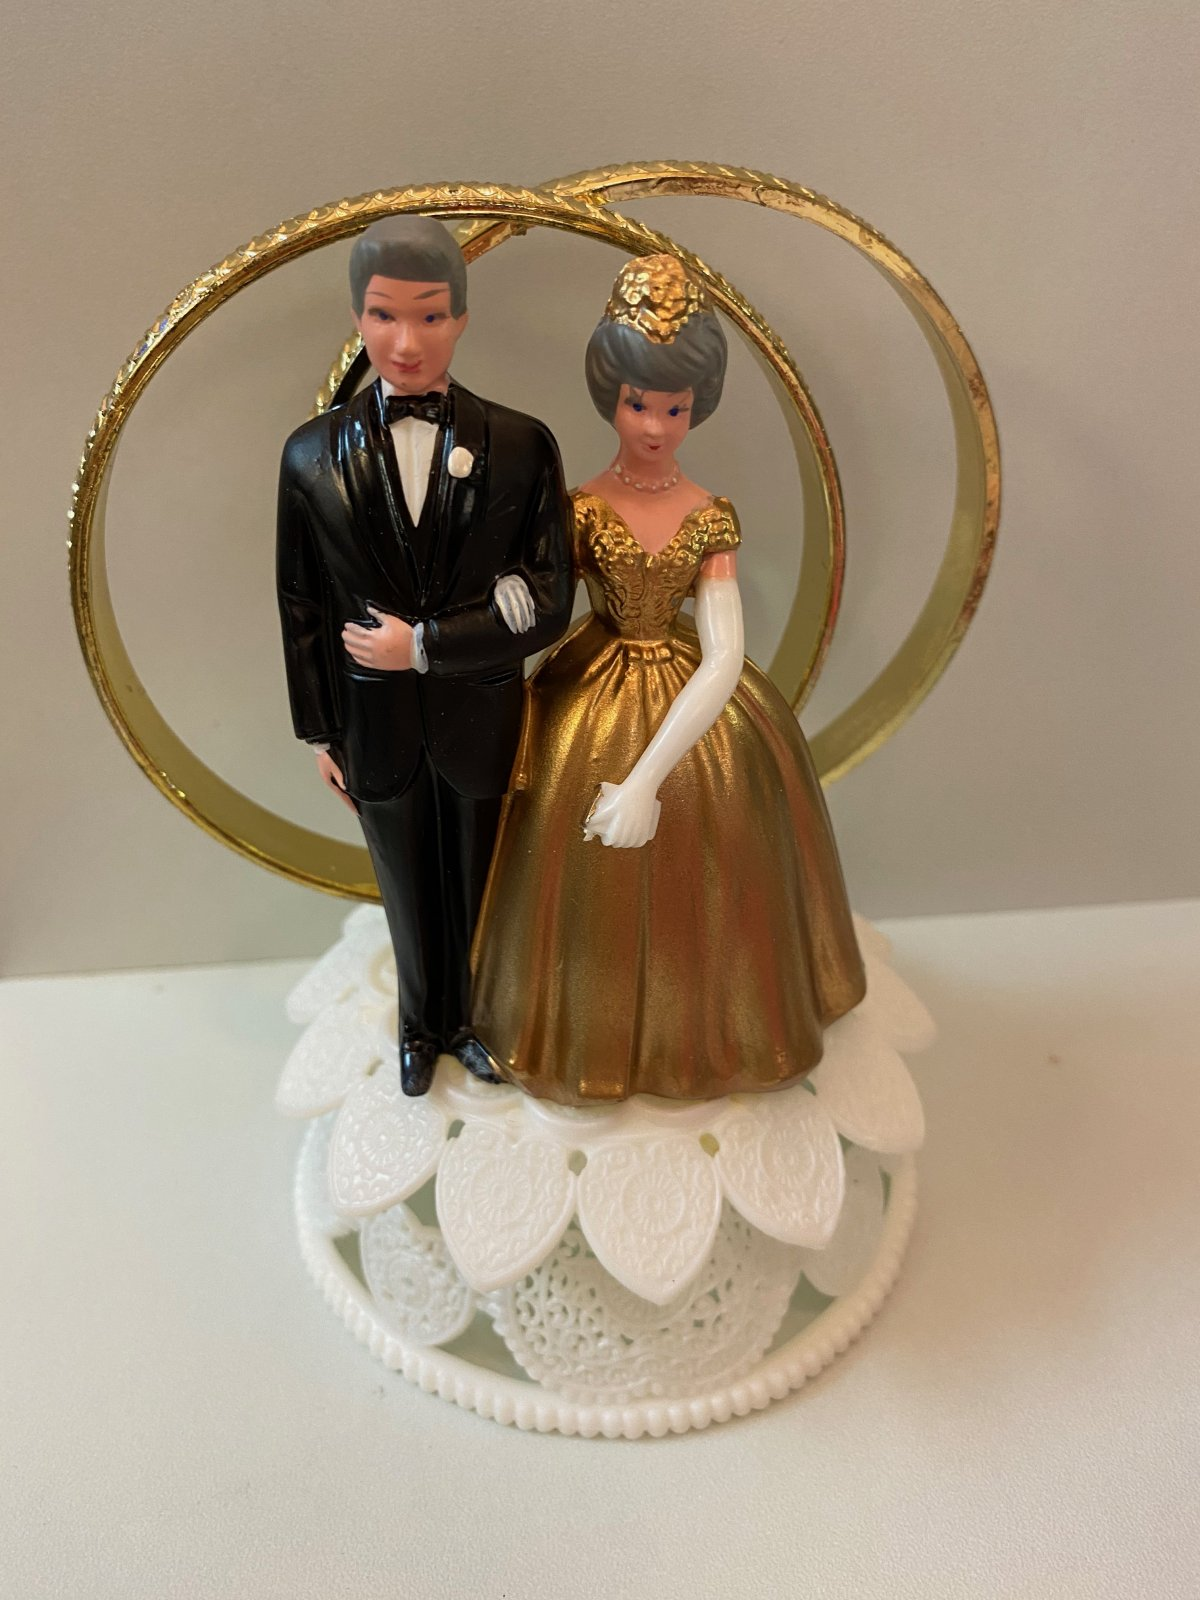 50th Anniversary Couple Cake Topper with Double Rings